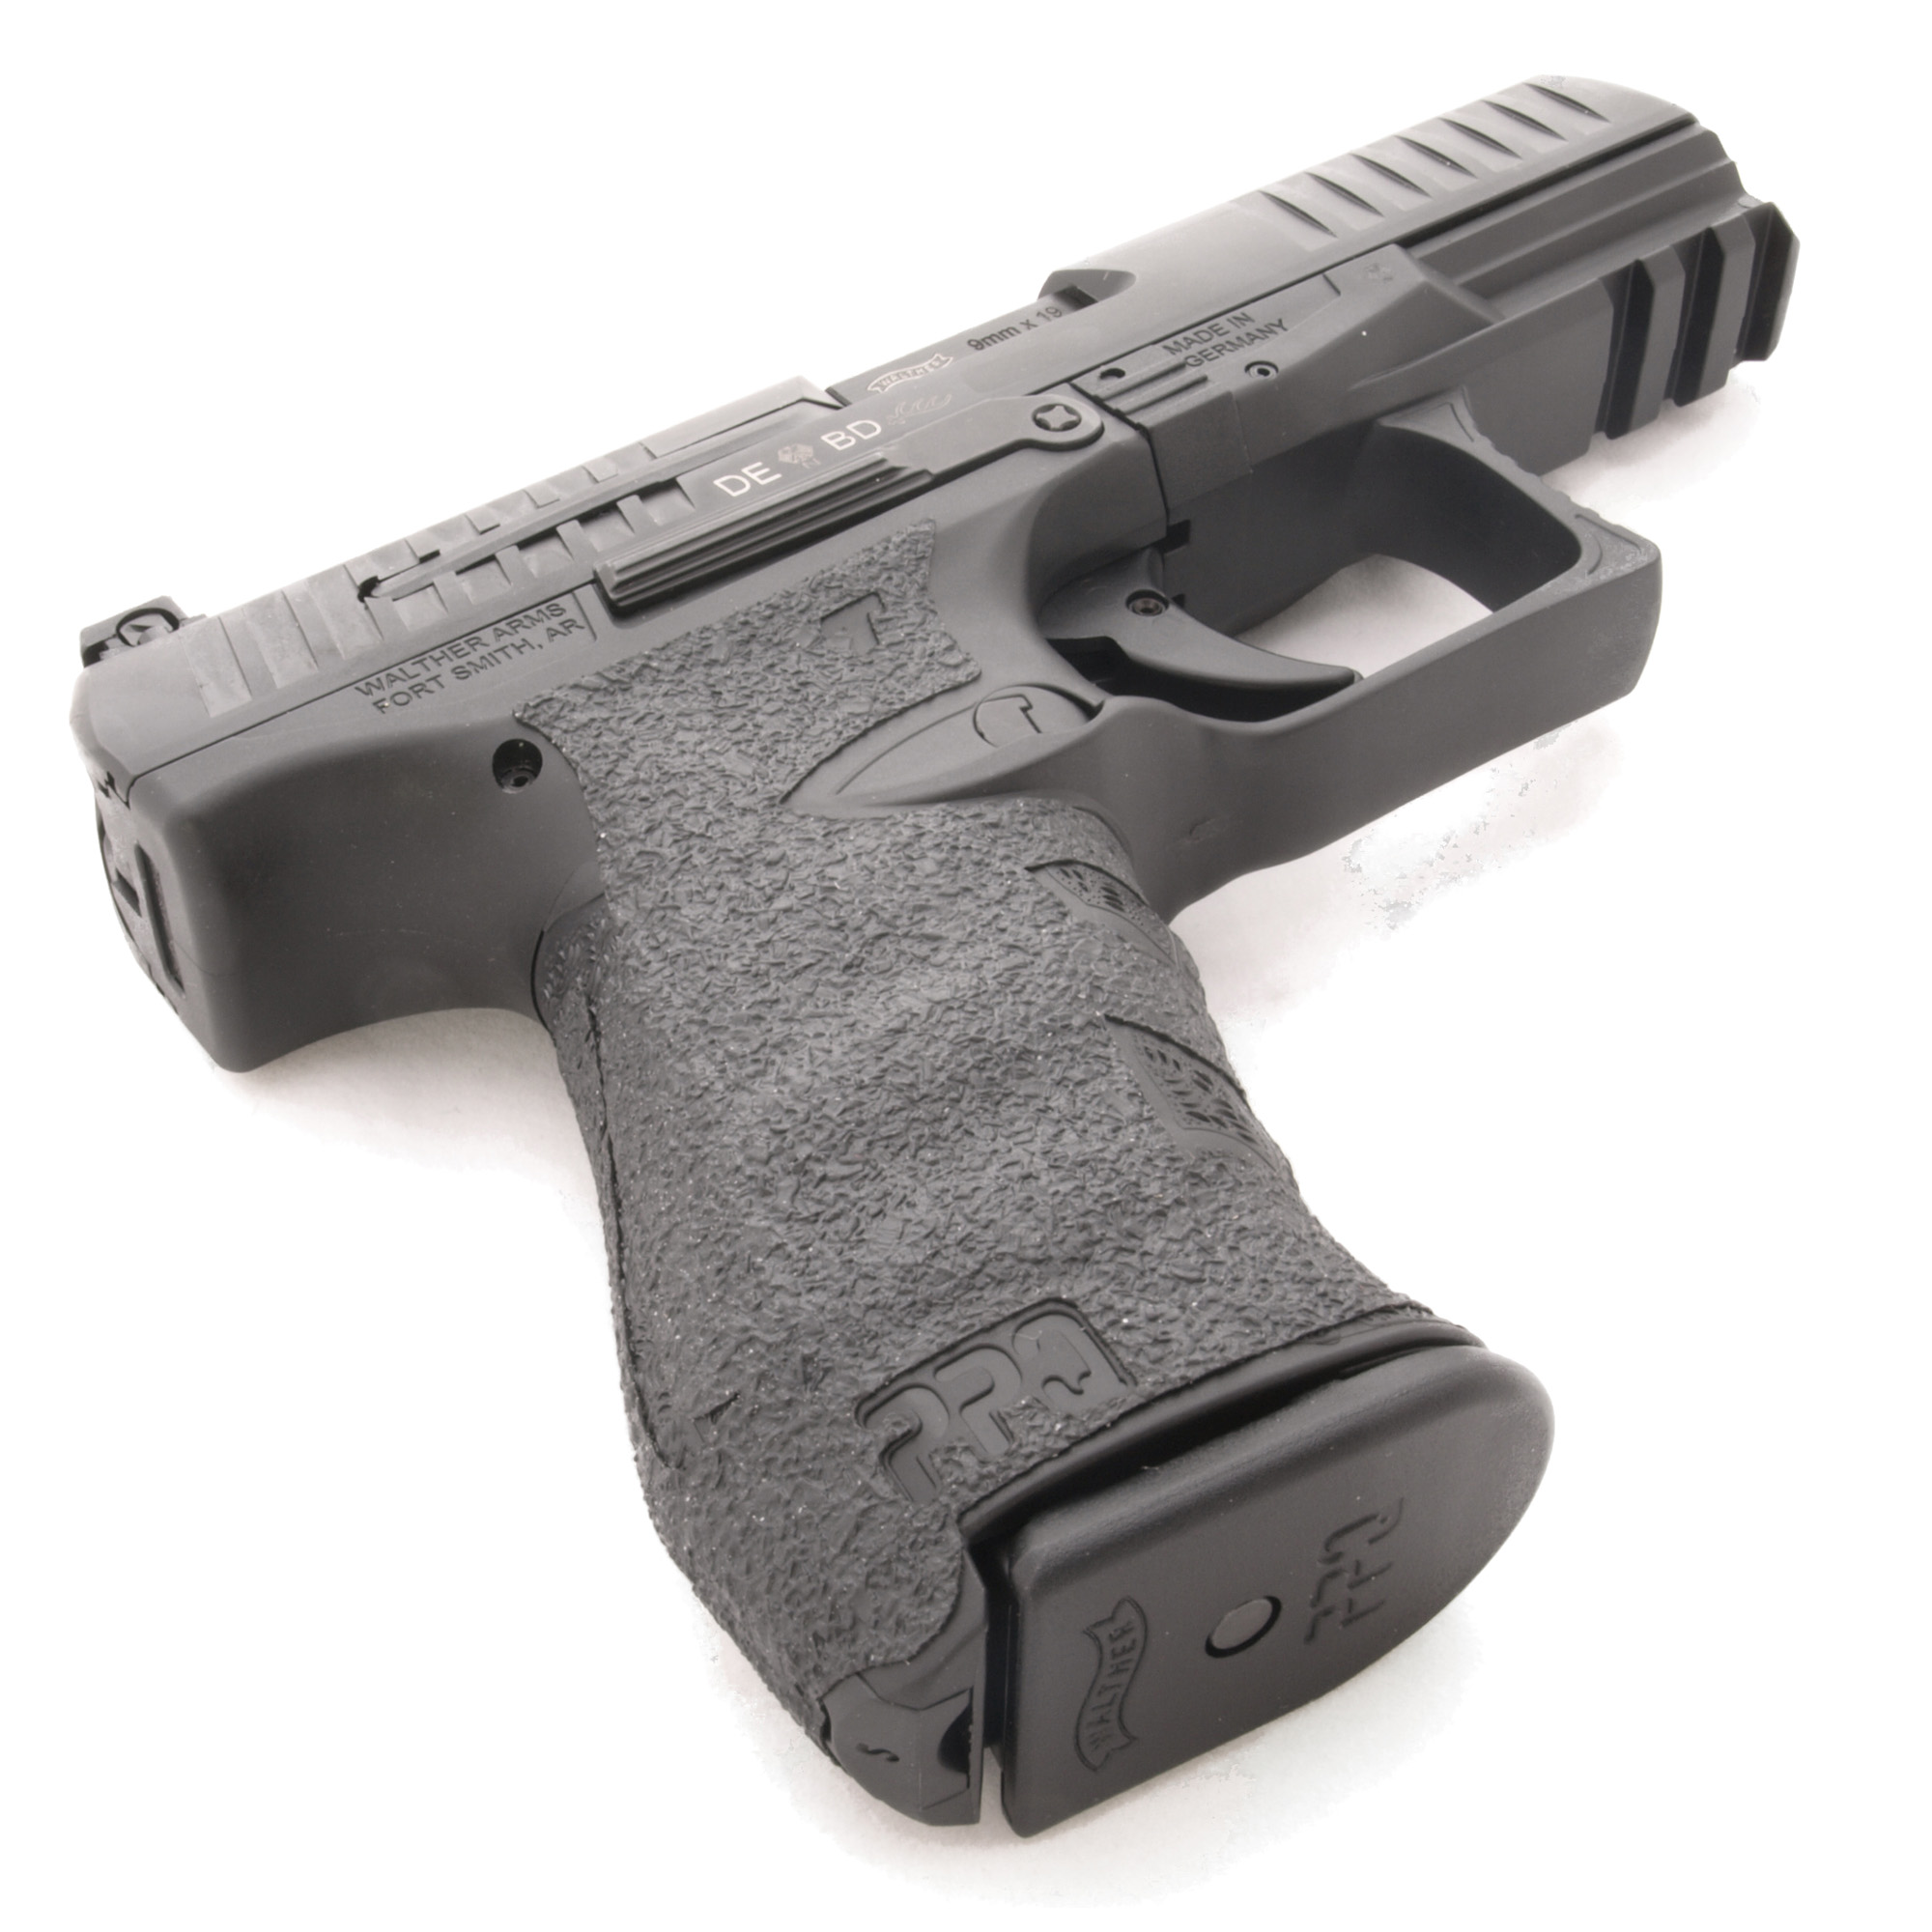 """TALON Grips for Walther Arms PPQ and Q5 Match models .22/9mm/.40. This rear wrap grip is in the rubber texture and offers full side panel coverage including the thumb rest area"""" three finger wraps under the trigger guard"""" and ample coverage on the backstrap. This grip needs no trimming to accommodate any backstrap size. This grip also has specific cutouts for the PPQ emblem. The grip for the 9mm PPQ grip fits the Q5 Match."""